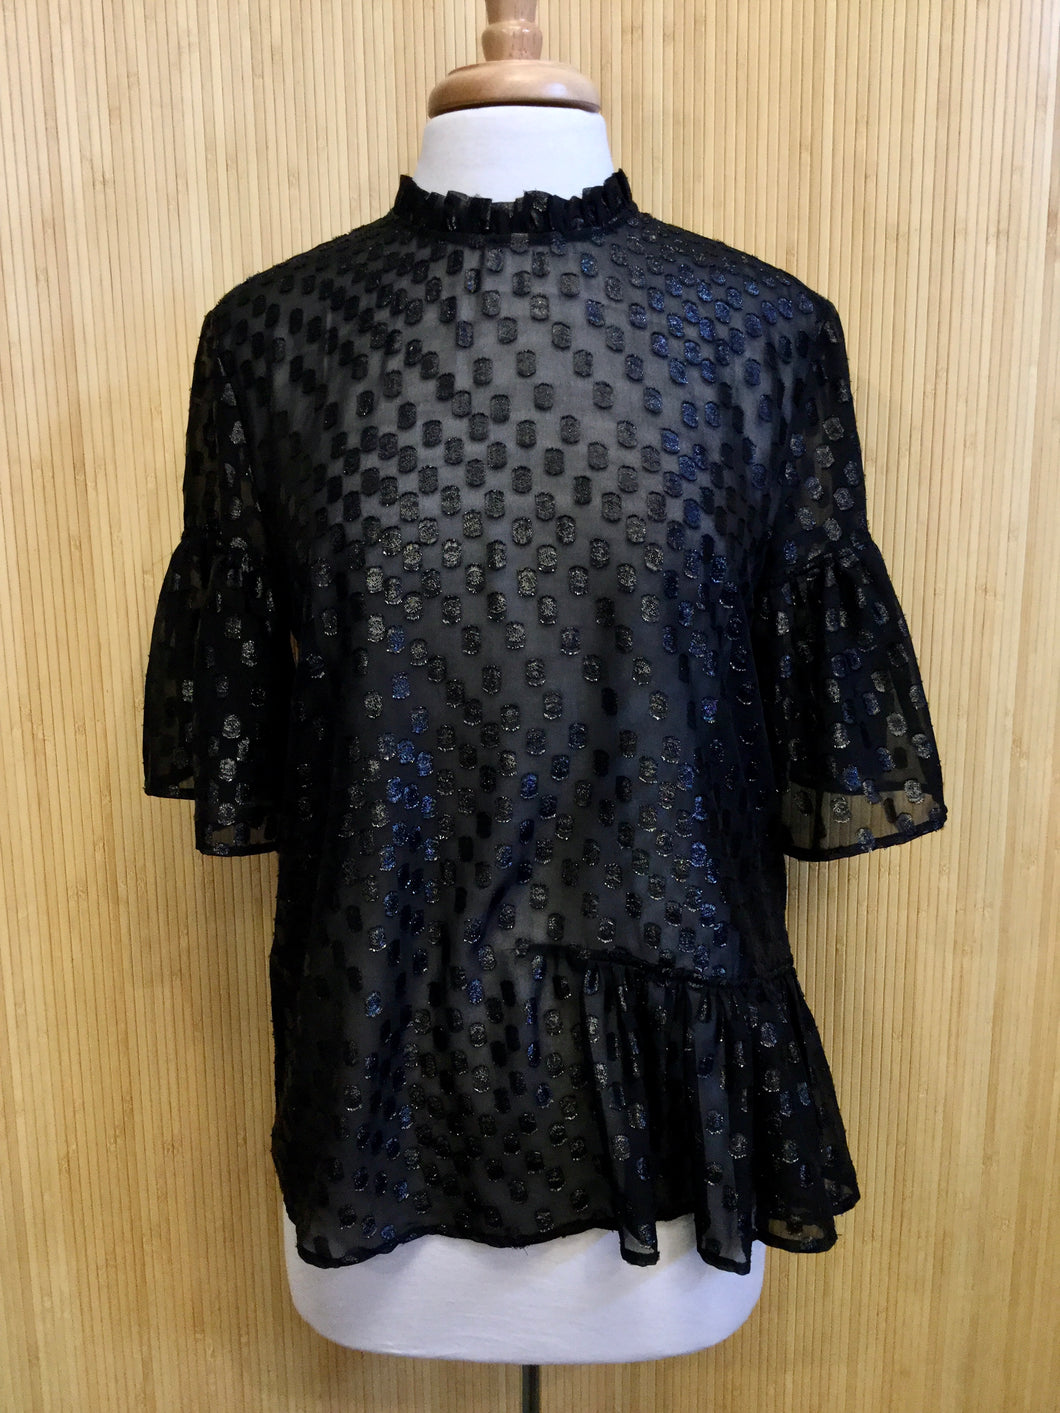 Sheer Polka Dot Ruffle Sleeve Top (L)